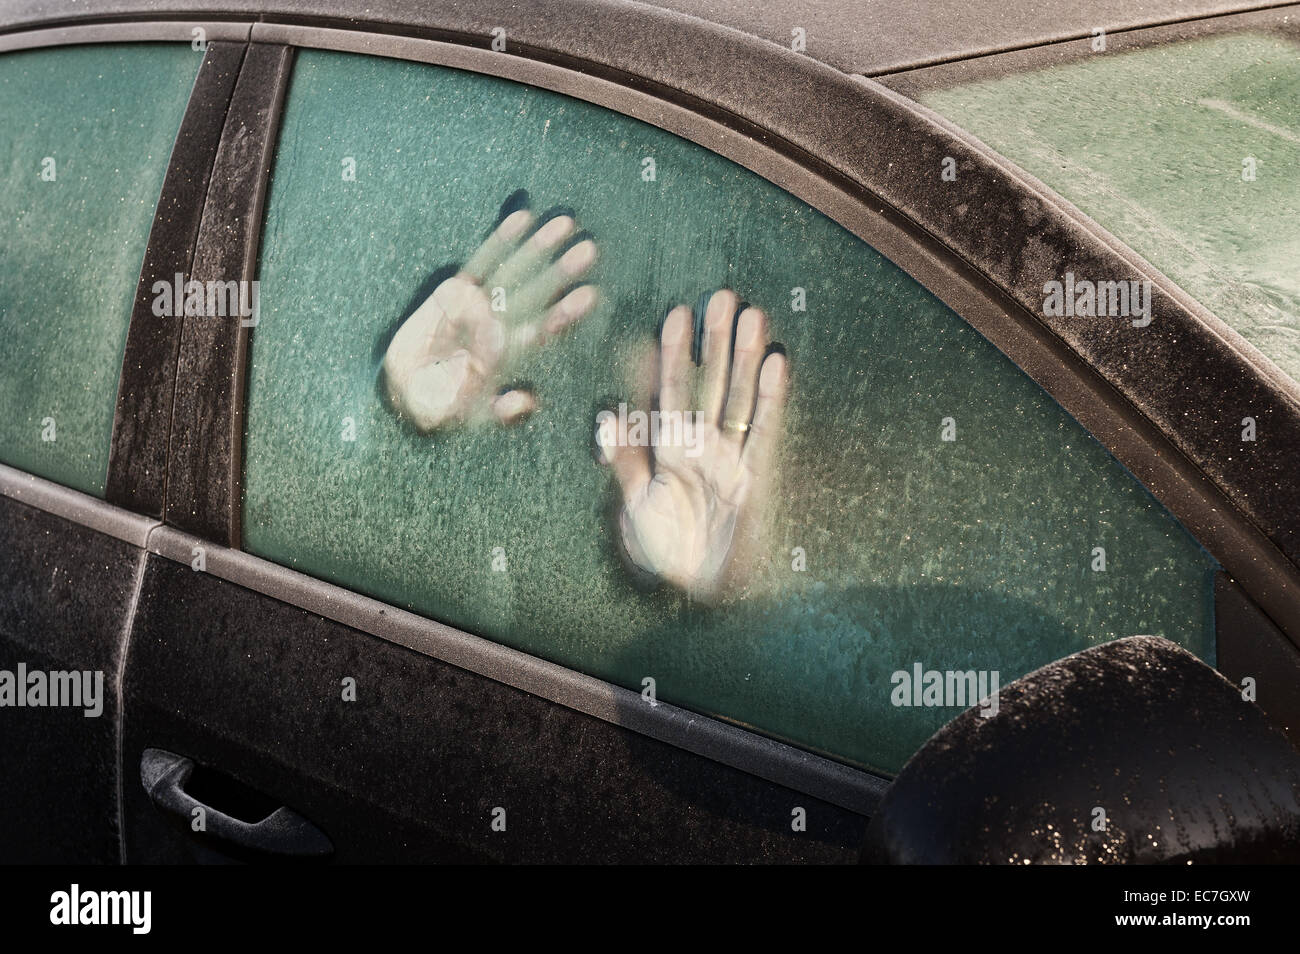 hand print like foot prints melted frost on window to car idea of trapped inside surviving cold spell call for help - Stock Image